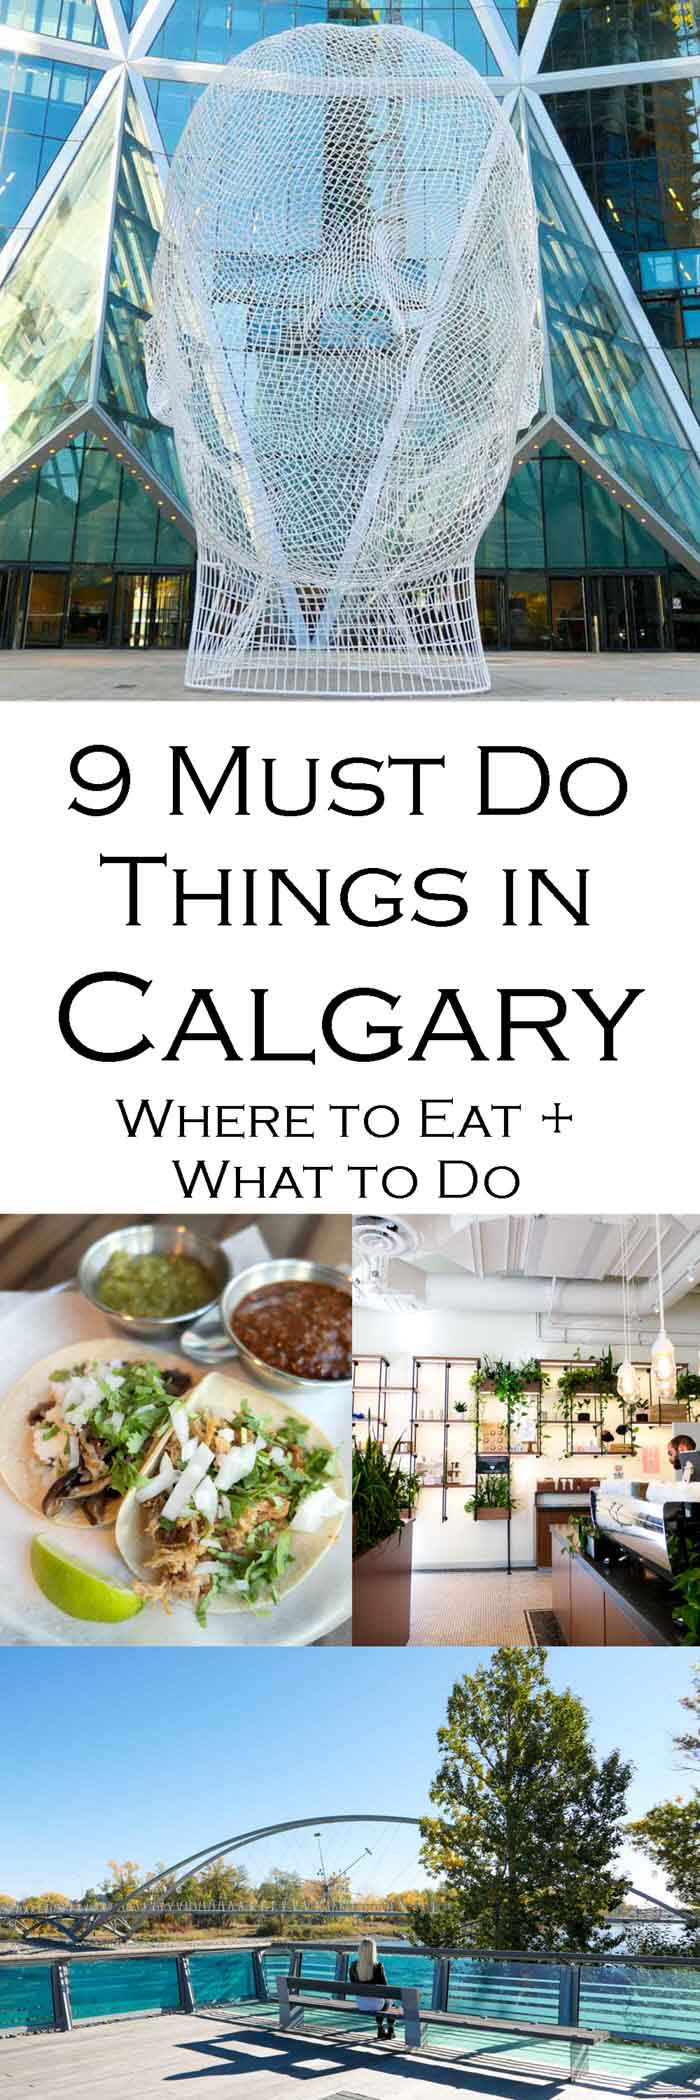 What to Do in Calgary - Top Attractions + Restaurants for Calgary Travel Guide